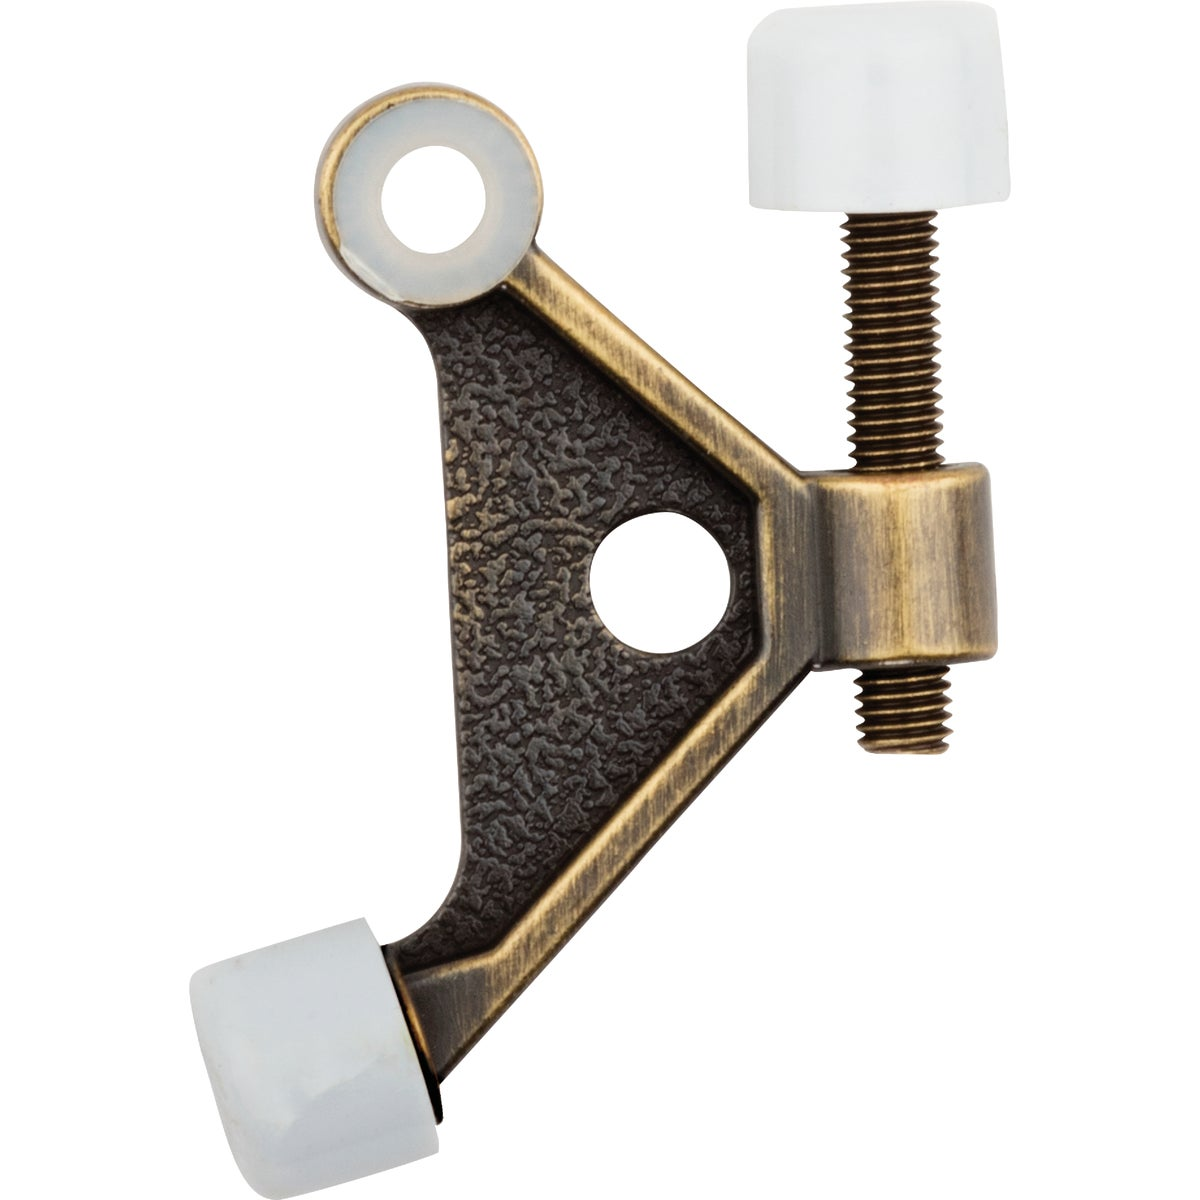 AB HINGE DOOR STOP - N159046 by National Mfg Co